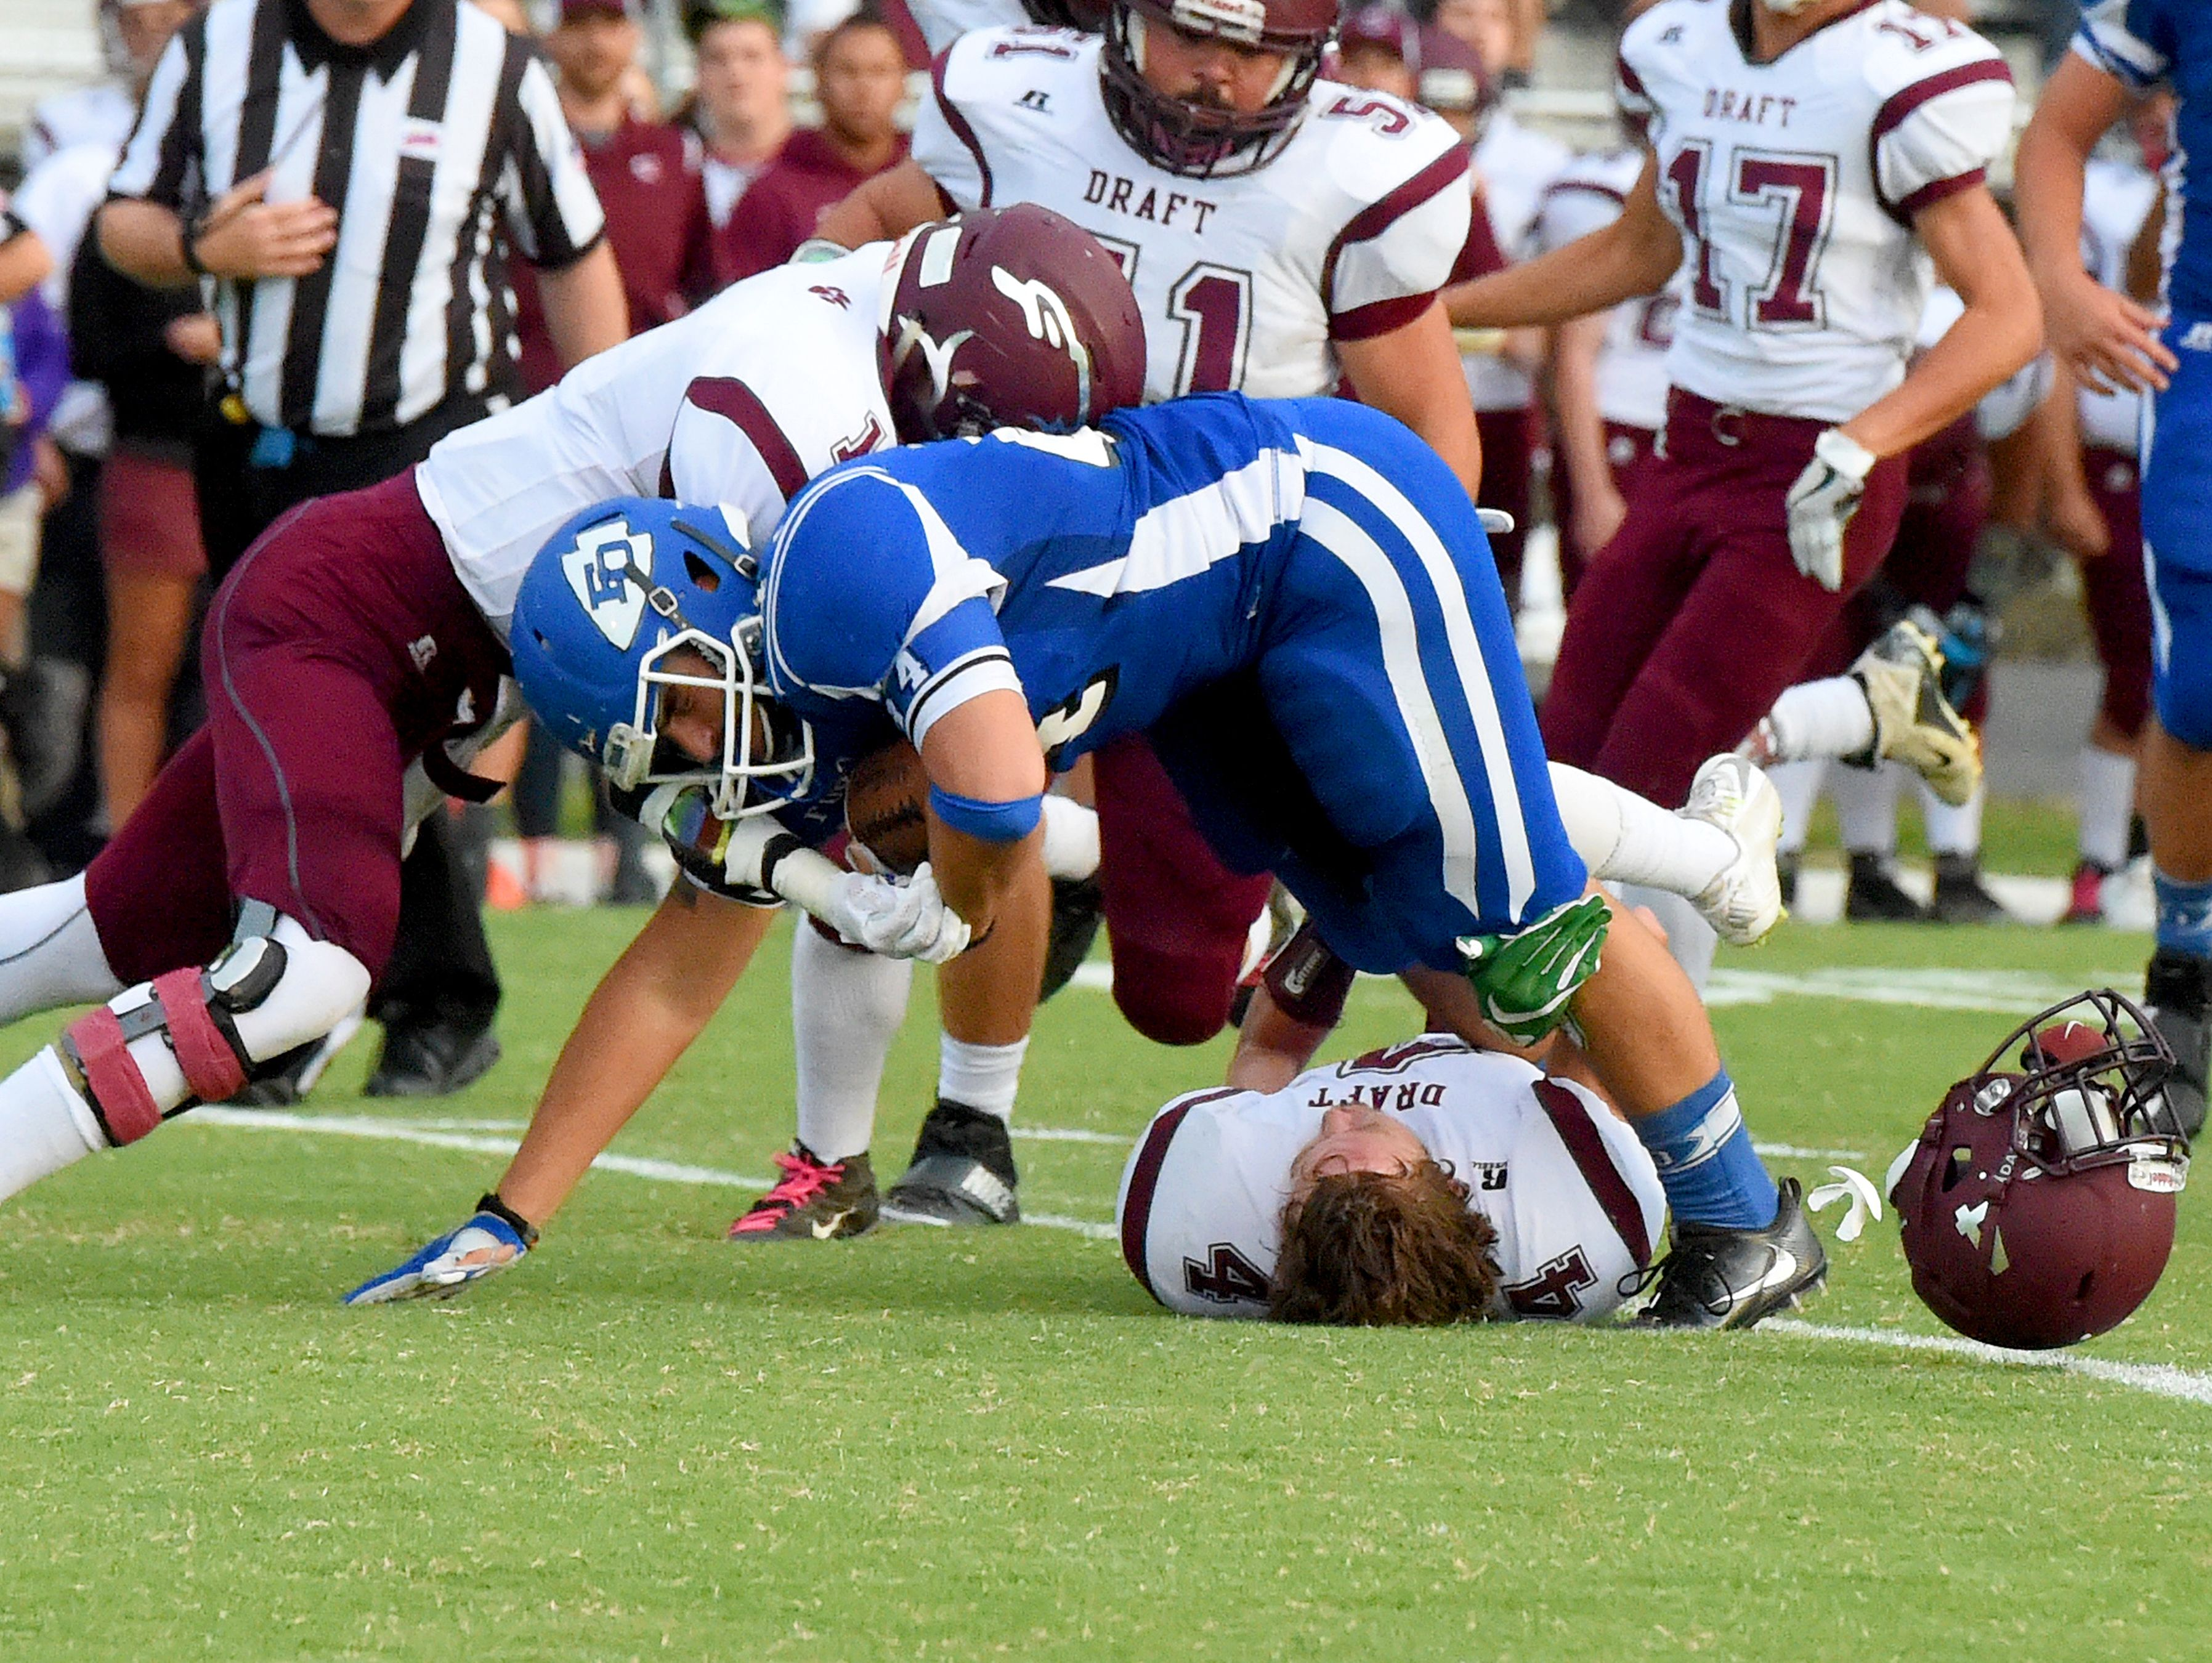 Fort Defiance's Austin Fitzwater is tackled with the football as the helmet comes off Stuarts Draft's Dalton McGann during a football game played in Fort Defiance on Friday, Sept. 2, 2016.